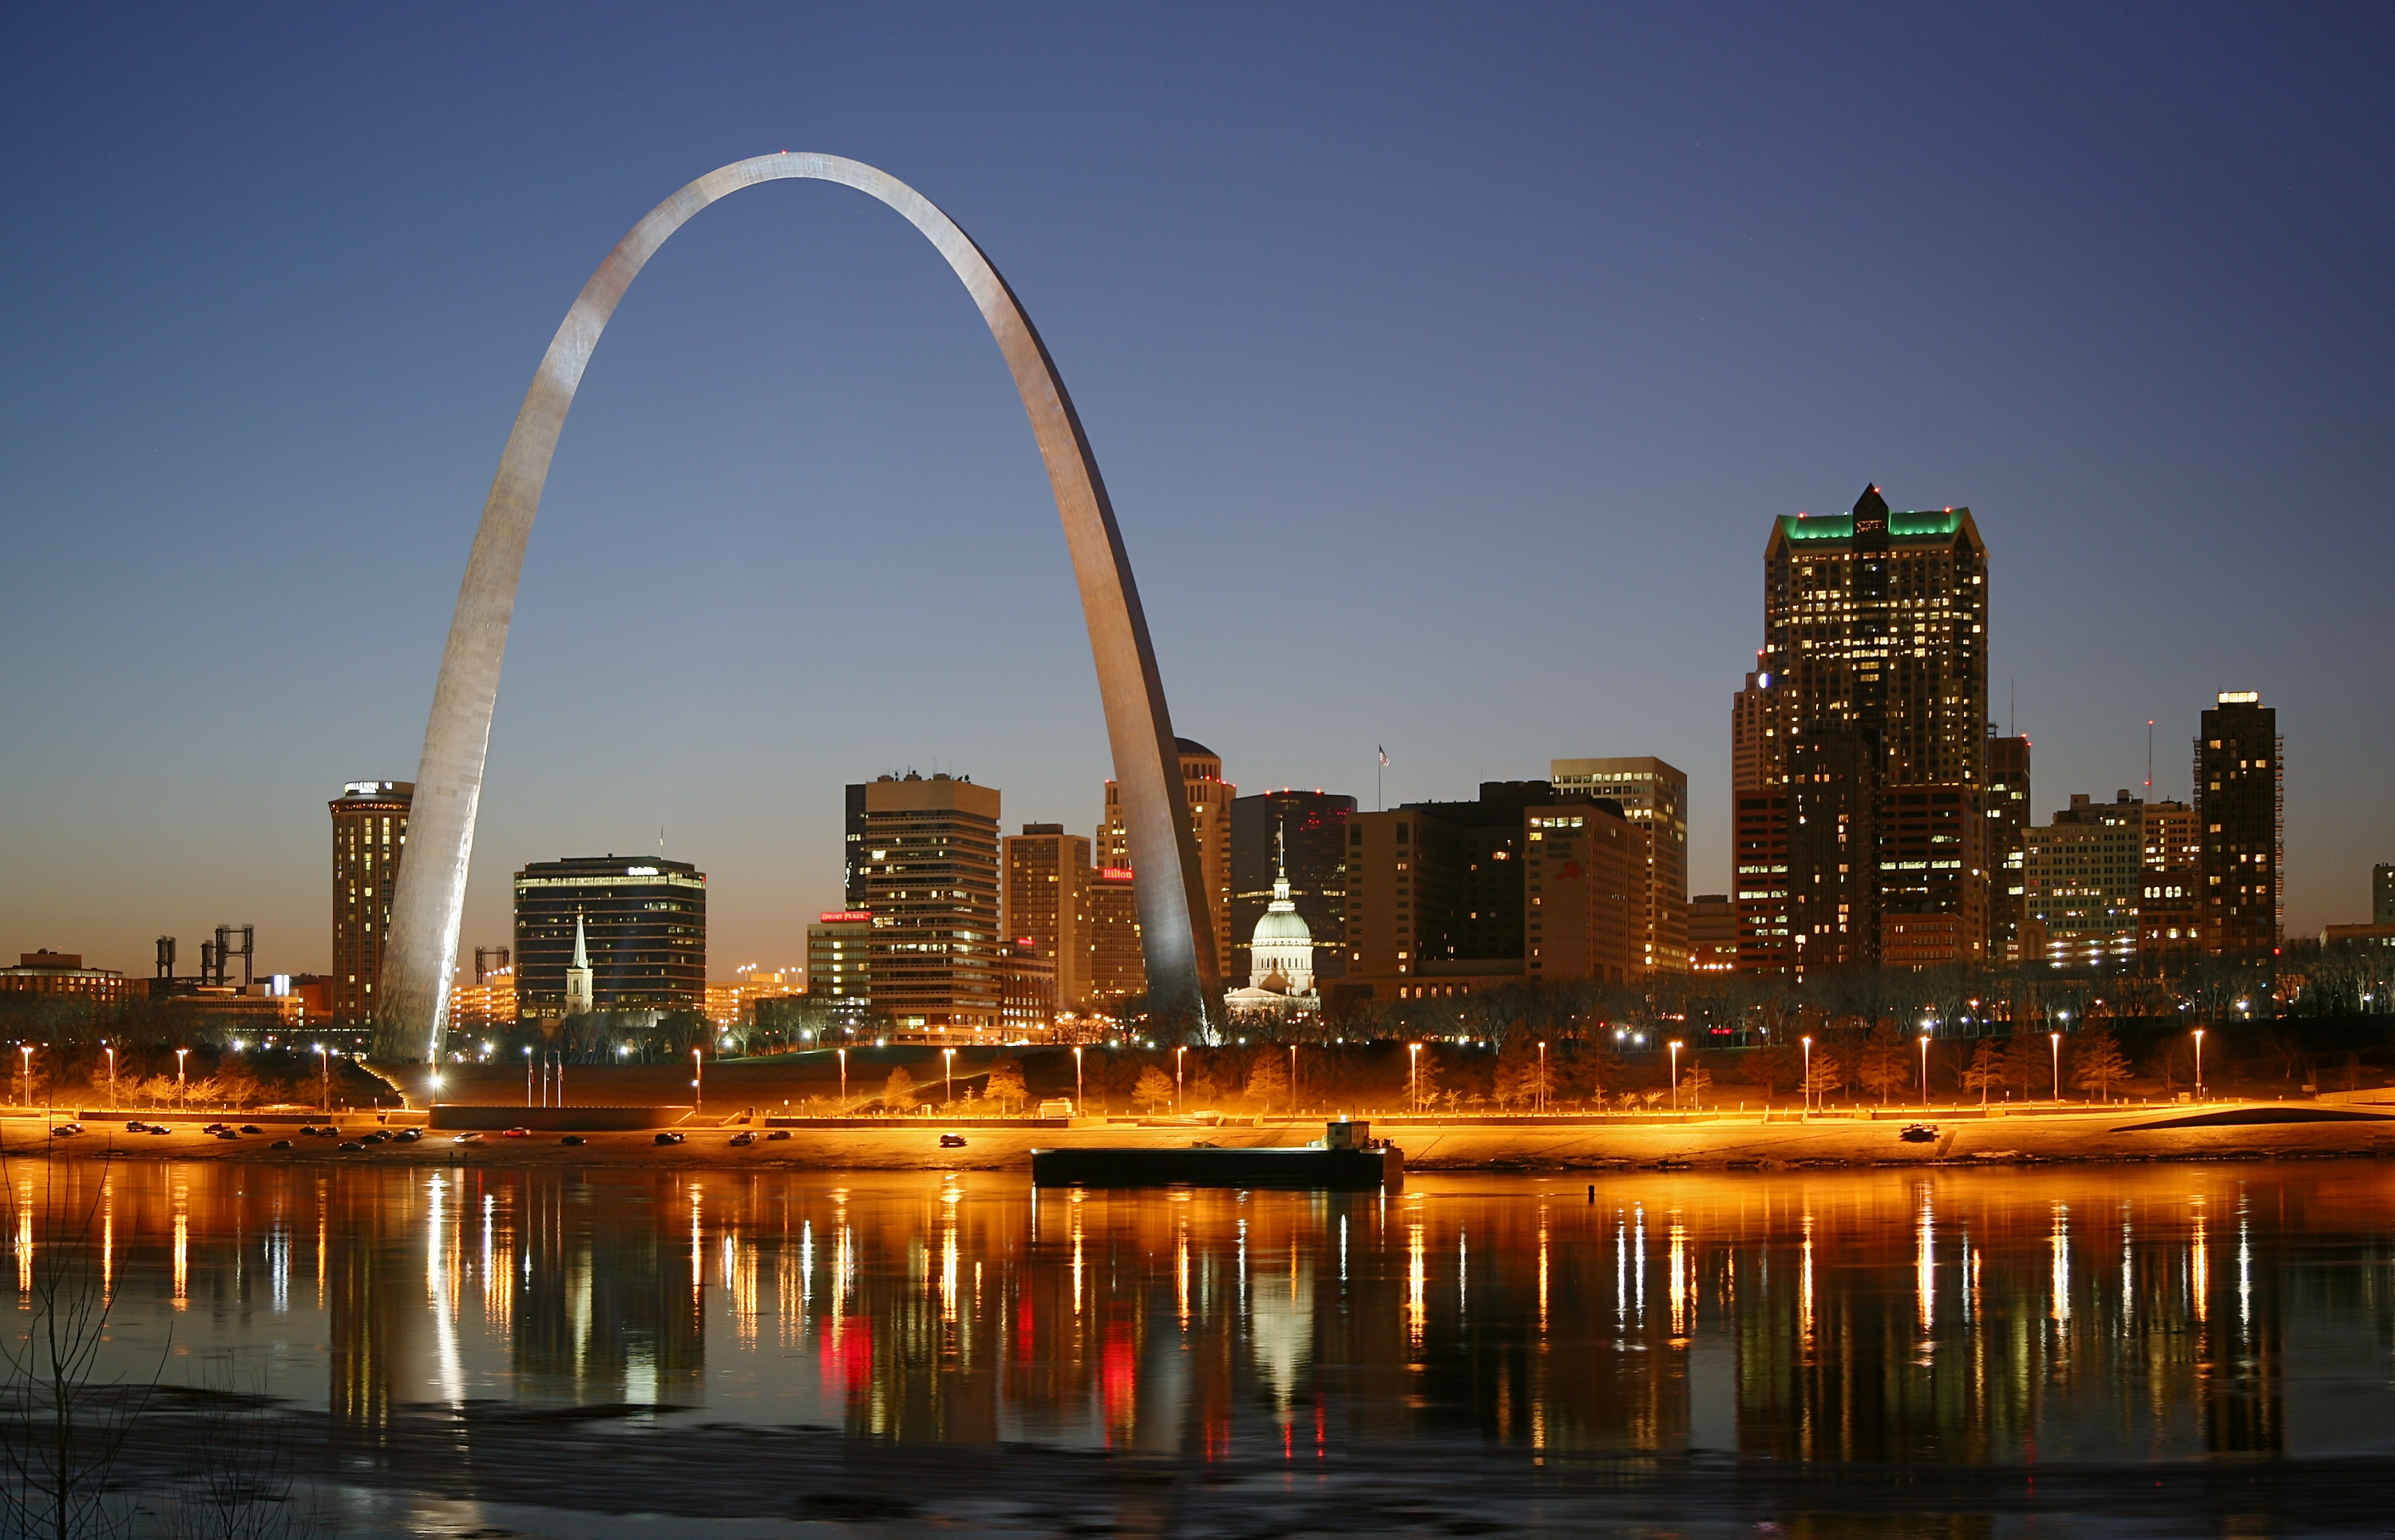 https://i2.wp.com/upload.wikimedia.org/wikipedia/commons/d/de/St_Louis_night_expblend.jpg